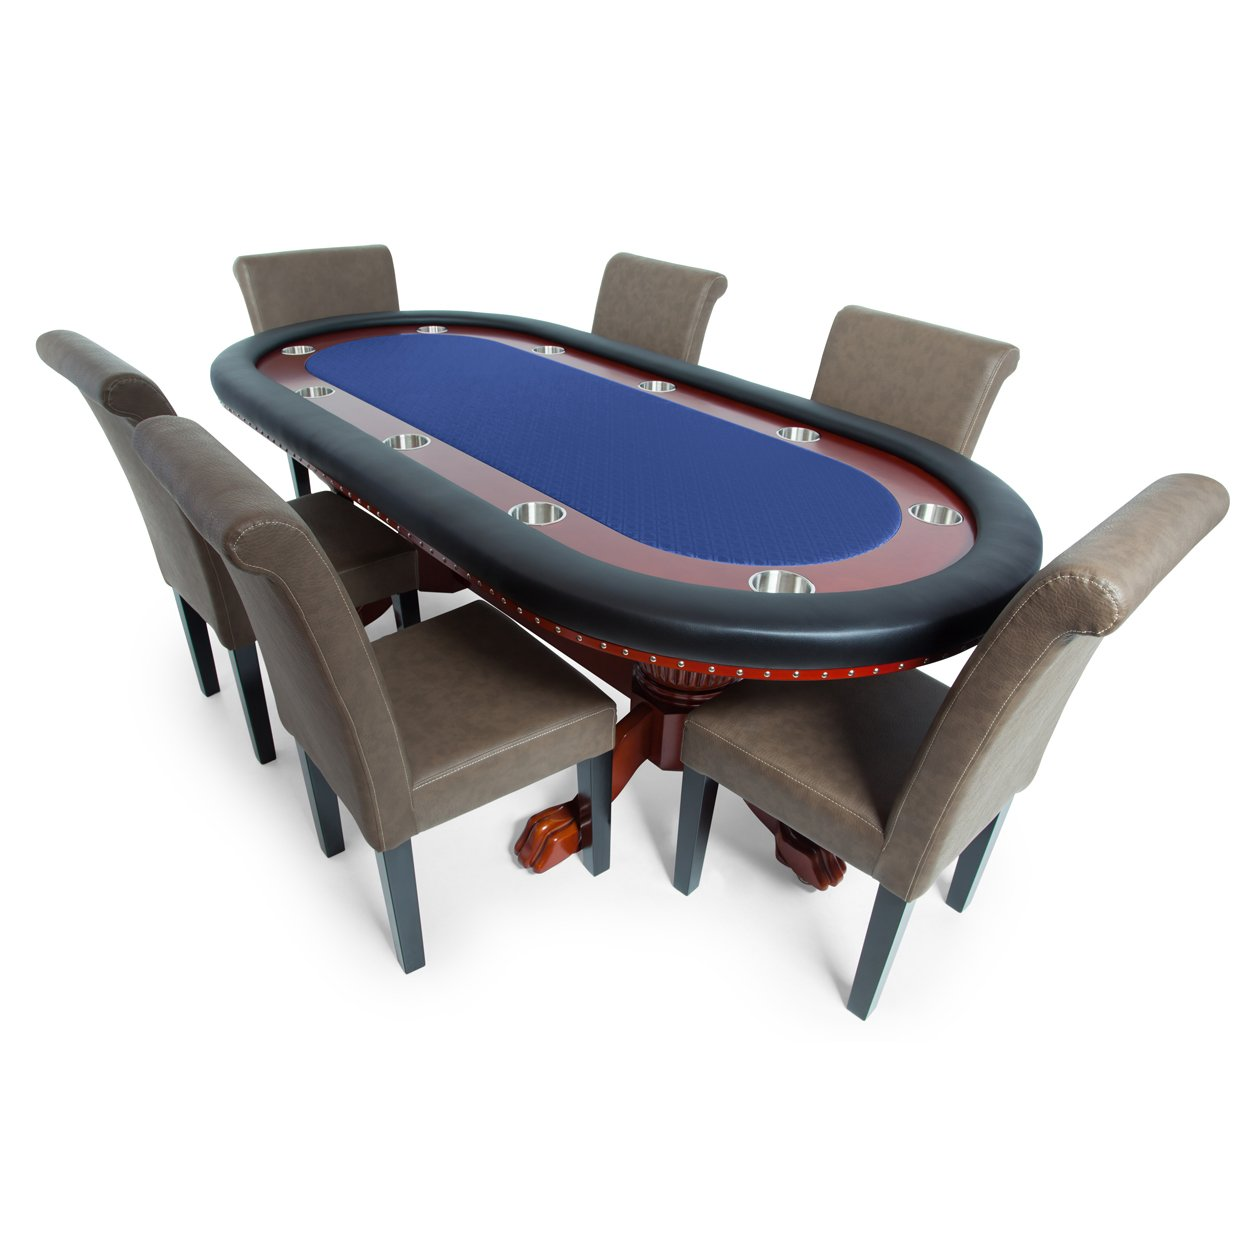 BBO Poker Rockwell Poker Table for 10 Players with Blue Speed Cloth Playing Surface, 94 x 44-Inch Oval, Includes 6 Lounge Chairs